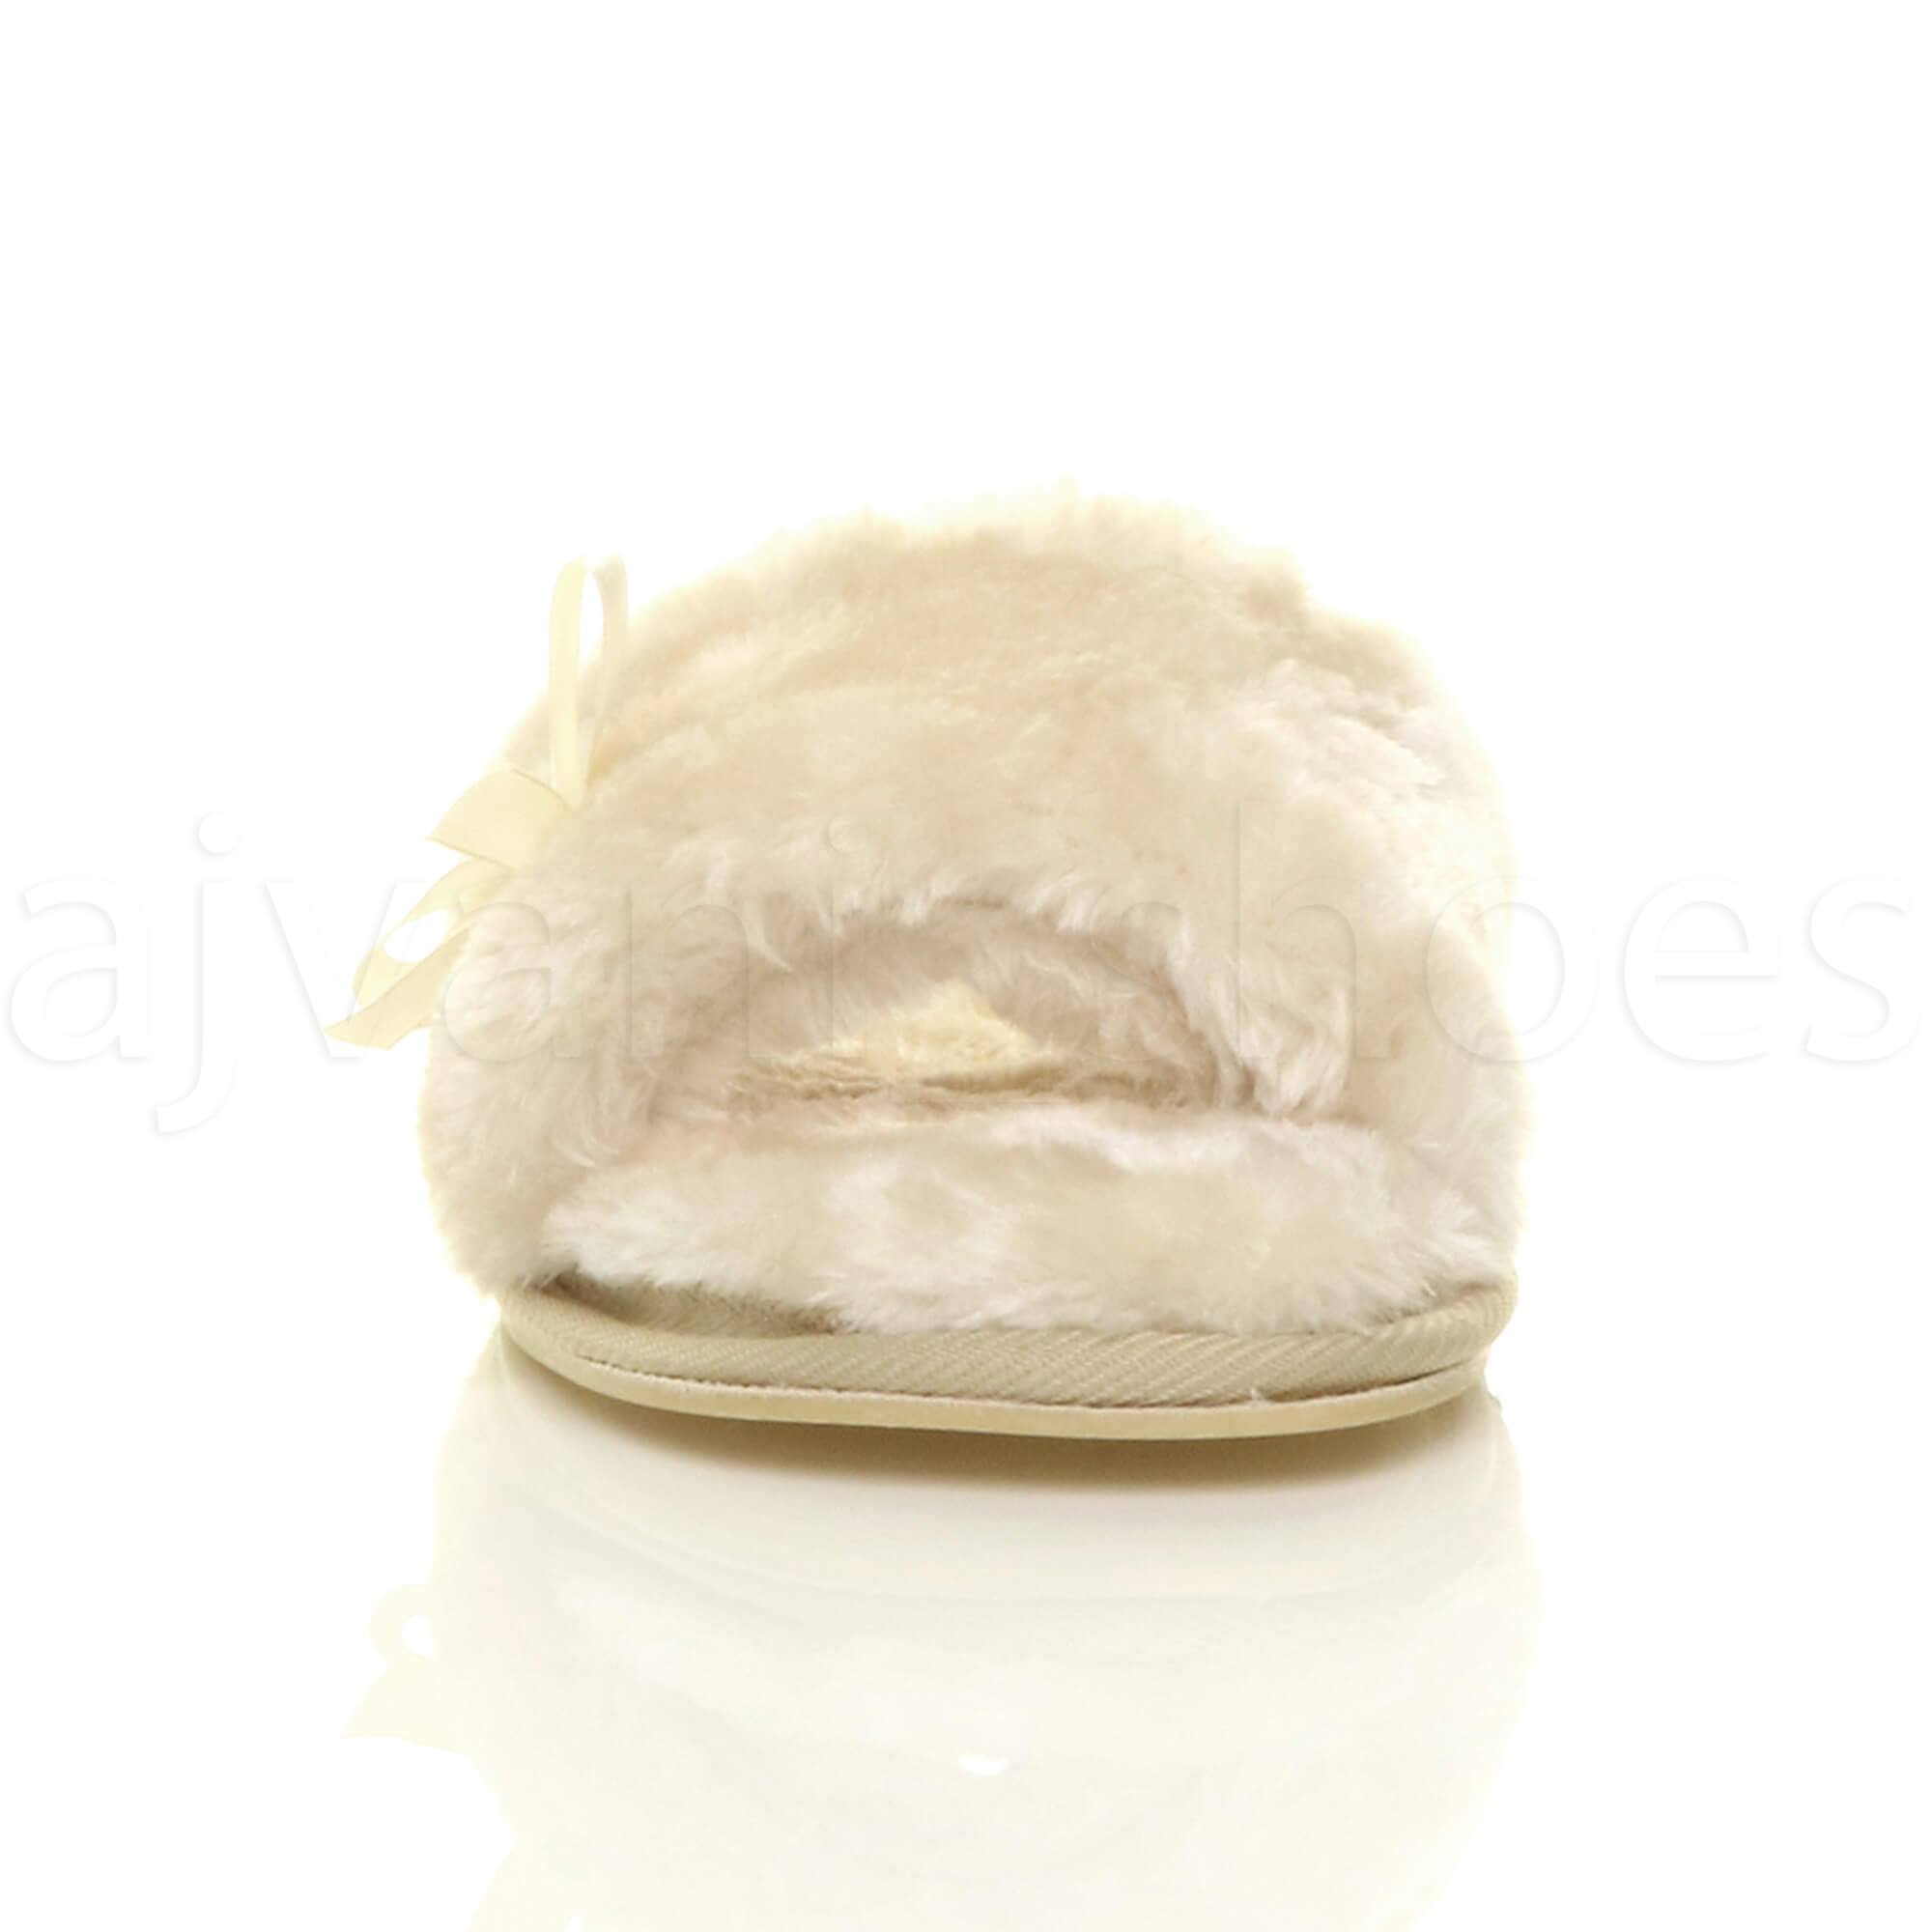 WOMENS-LADIES-FLAT-PEEP-TOE-BOW-LUXURY-COSY-FUR-LINED-SLIP-ON-SLIPPERS-SIZE thumbnail 7